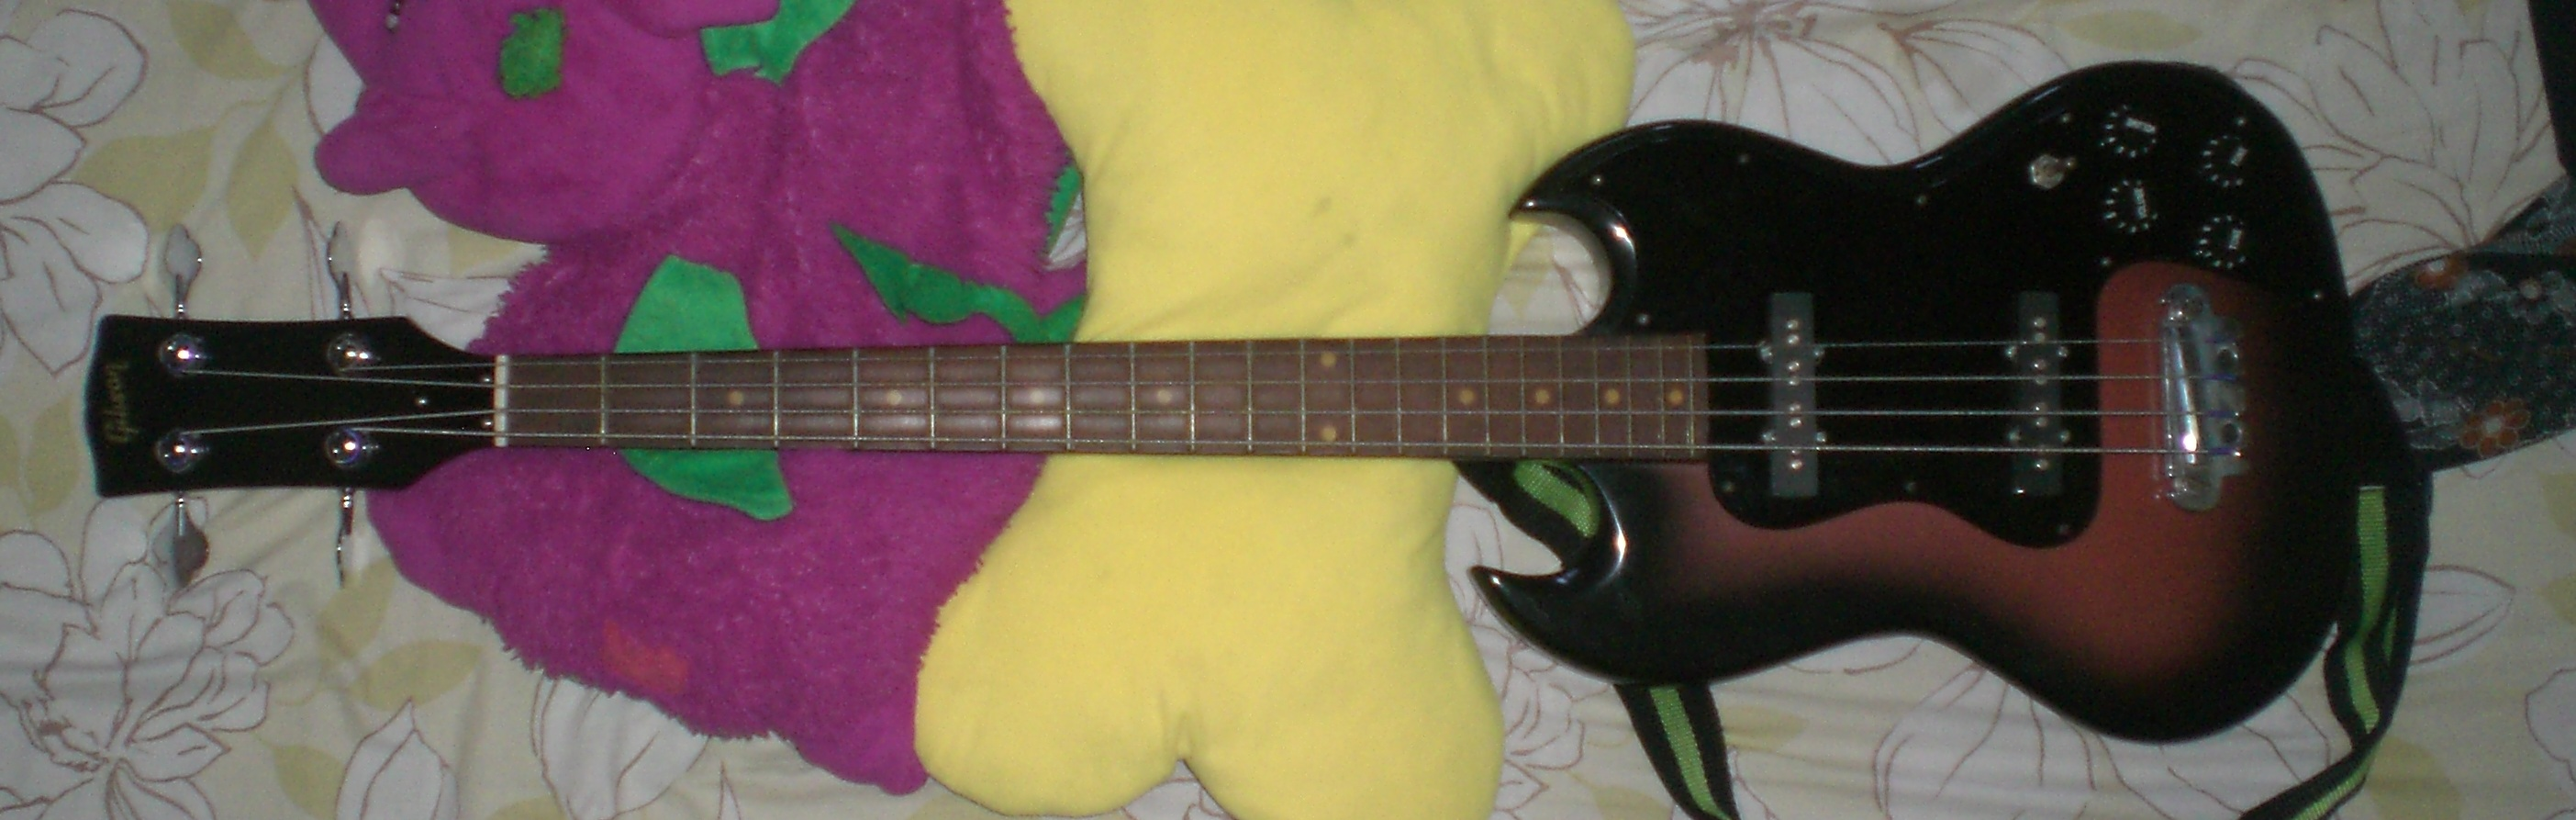 """[PROJECT] Fender Stratocaster SSS """"Mami Model"""" - Page 2 Cimg4080___copy_by_cruzerblade1029-d5ter8n"""